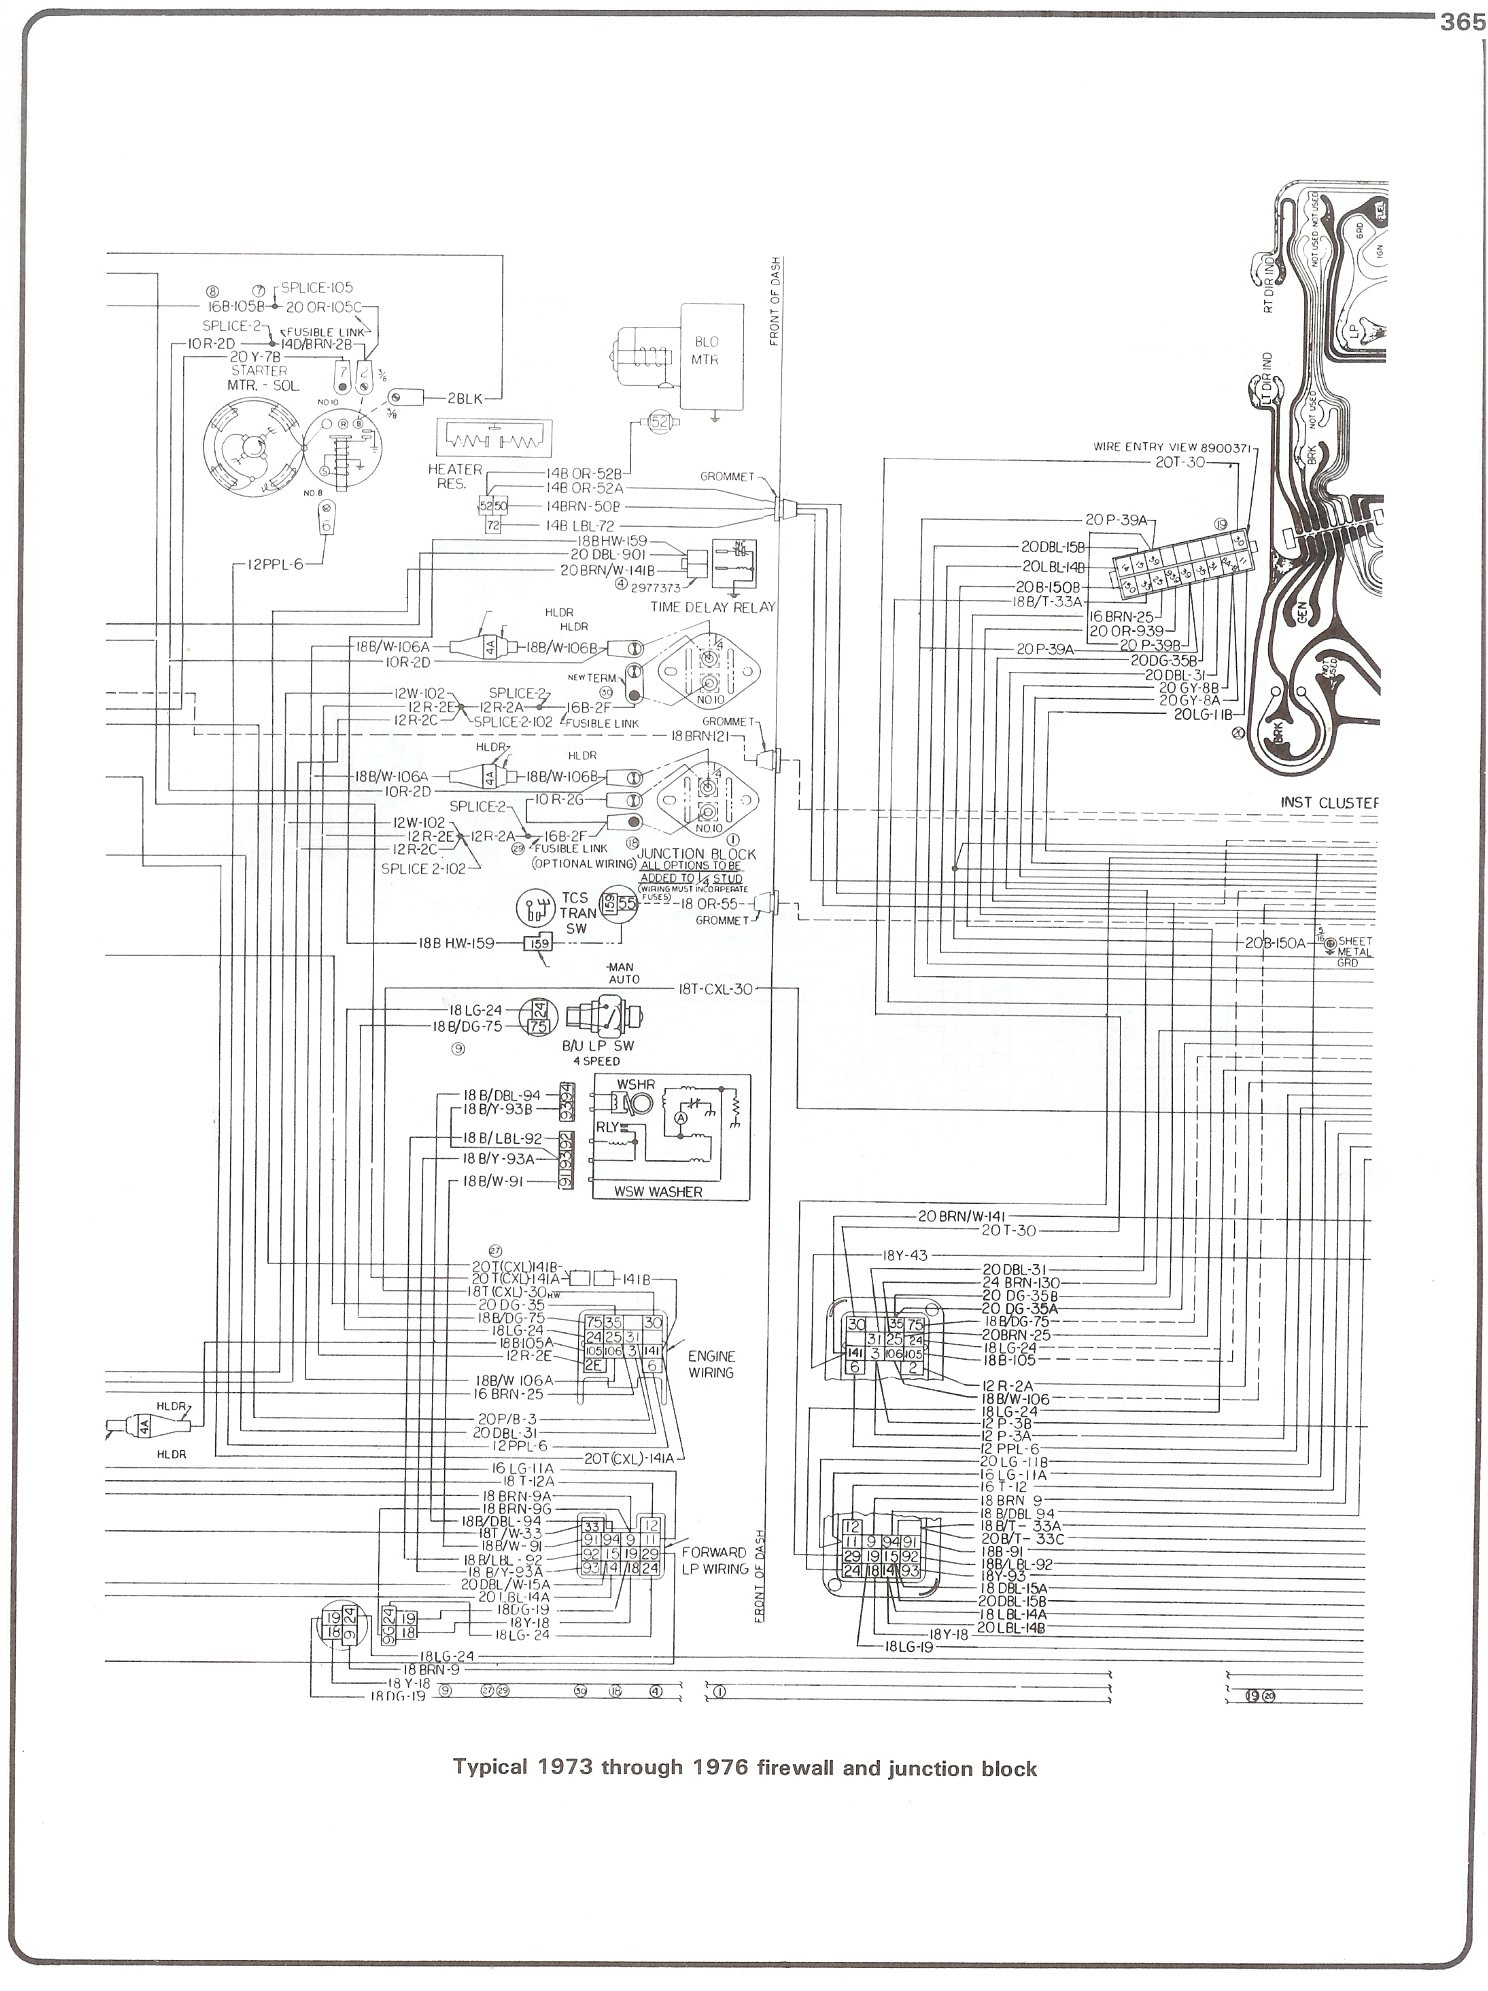 1986 Gmc Ignition Wiring Detailed Schematics Diagram Complete 73 87 Diagrams 2002 Envoy Coil